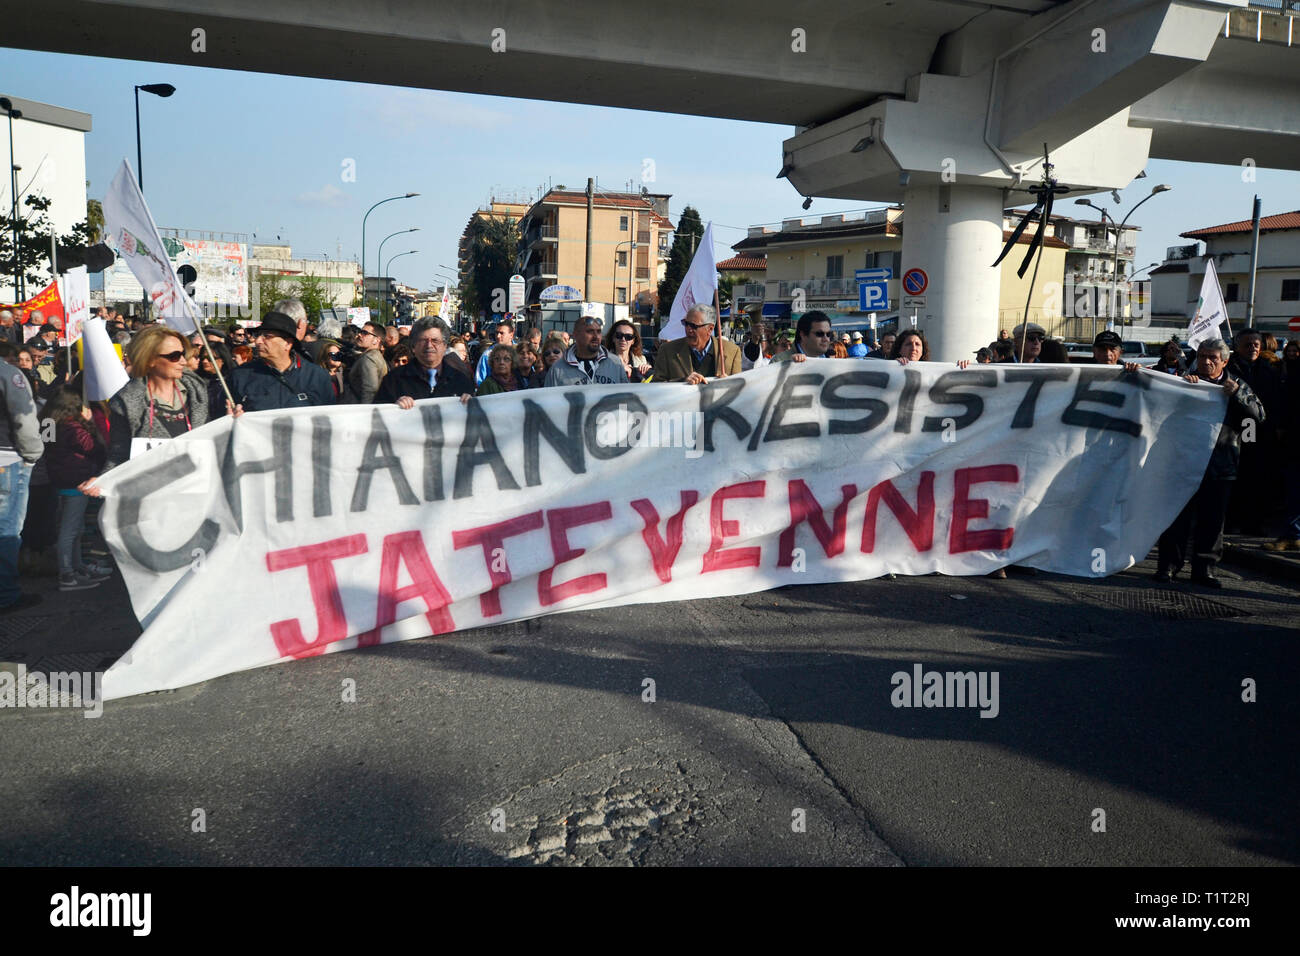 Demonstration in Chiaiano, a suburb of Naples. City's inhabitants are protesting against the will of the government to build a new landfill - Stock Image